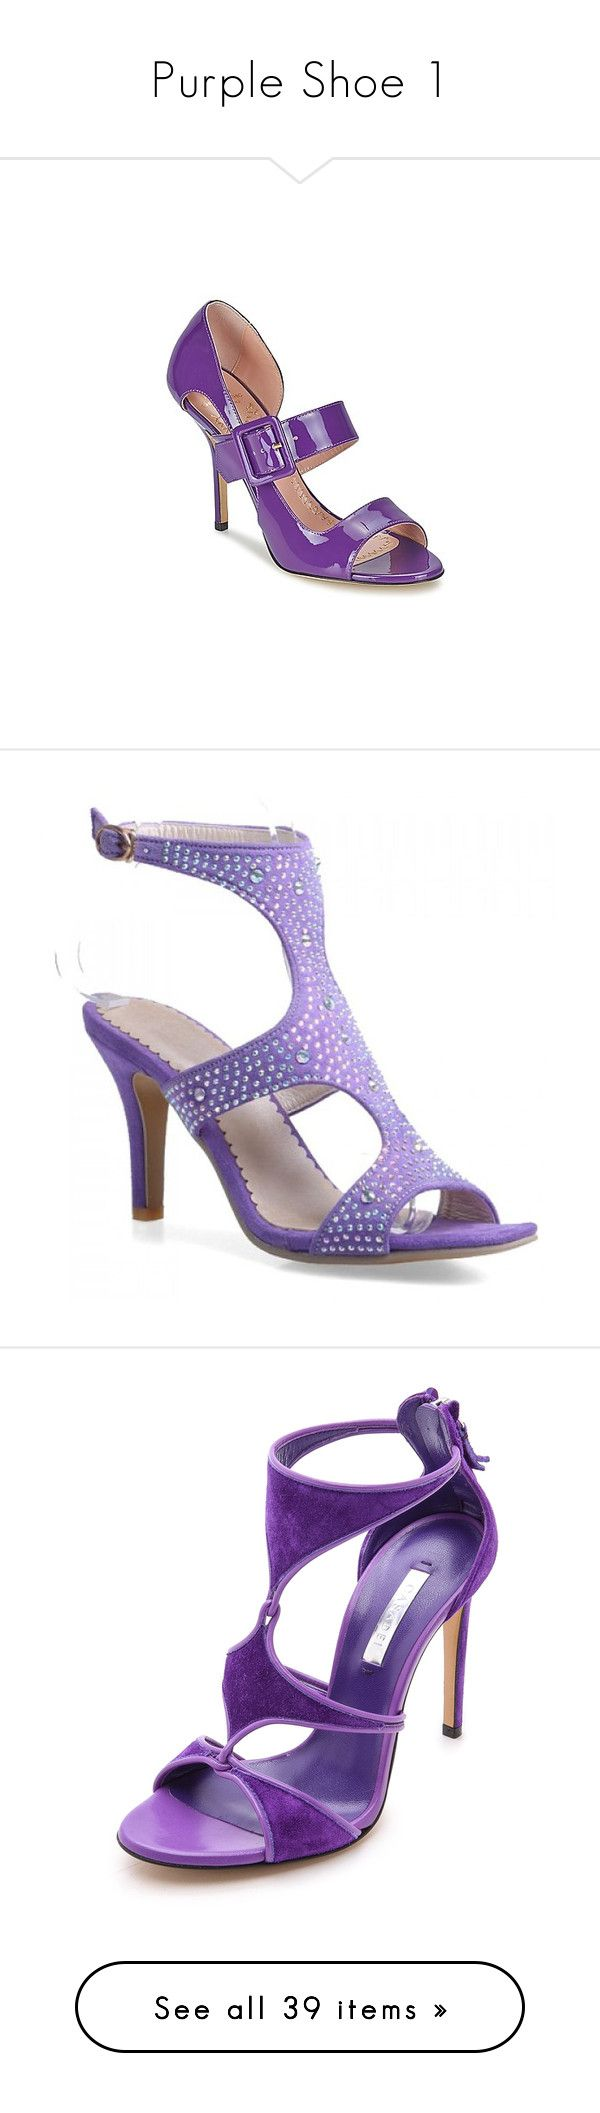 """""""Purple Shoe 1"""" by sunnyia ❤ liked on Polyvore featuring shoes, sandals, heels, purple, women, heeled sandals, purple shoes, genuine leather shoes, leather heeled sandals and purple sandals"""